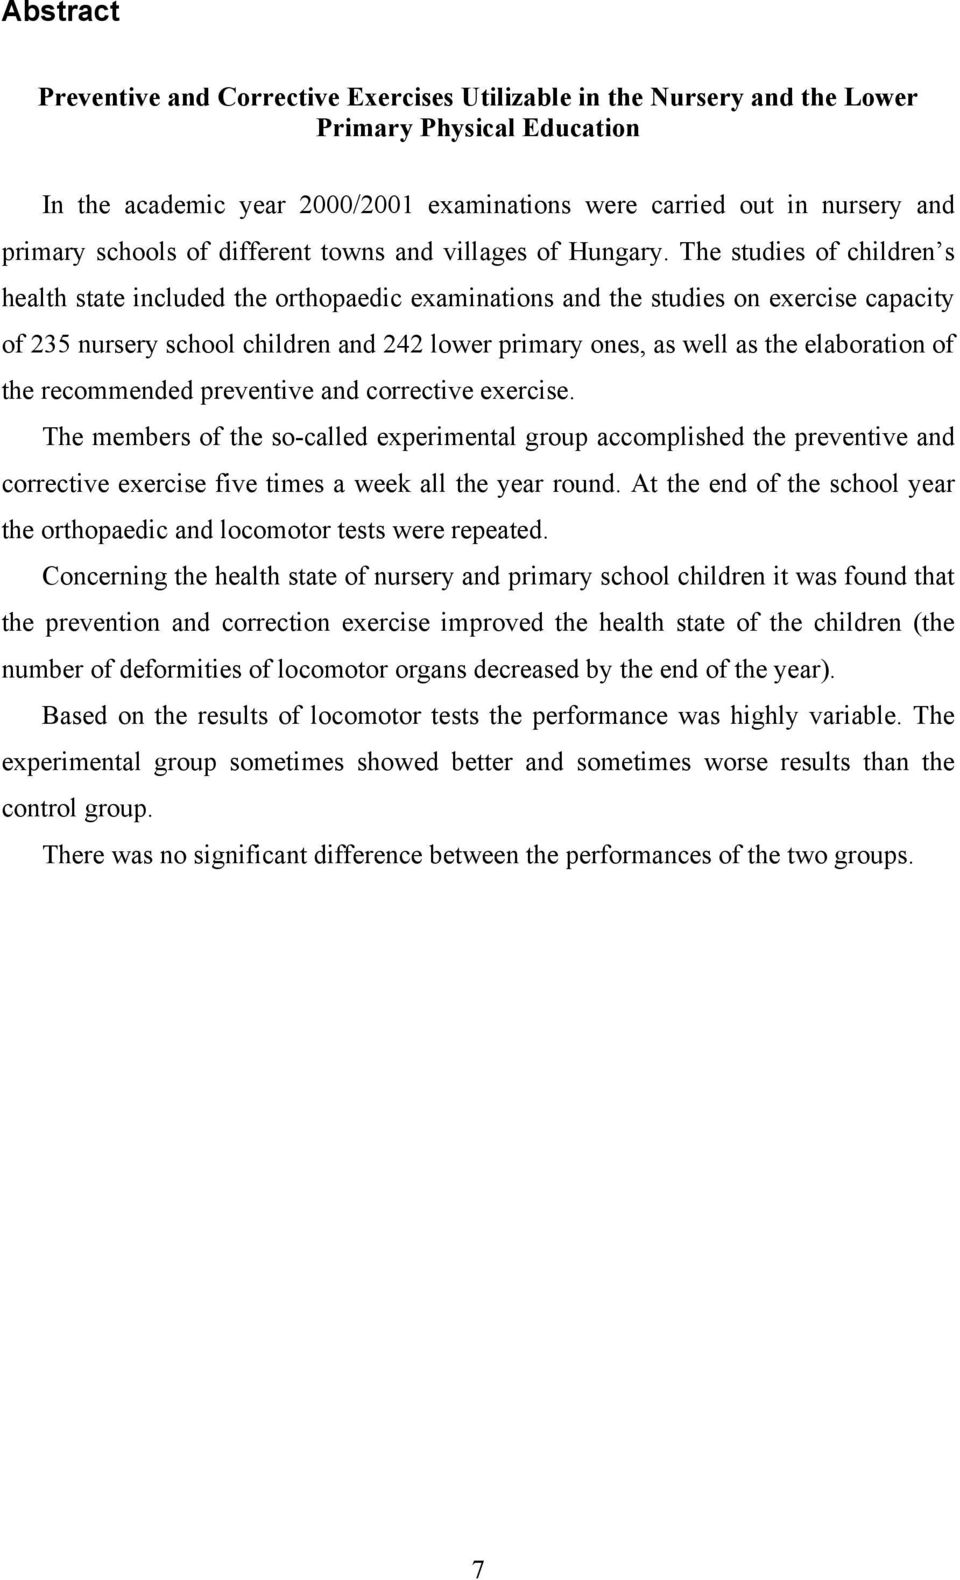 The studies of children s health state included the orthopaedic examinations and the studies on exercise capacity of 235 nursery school children and 242 lower primary ones, as well as the elaboration